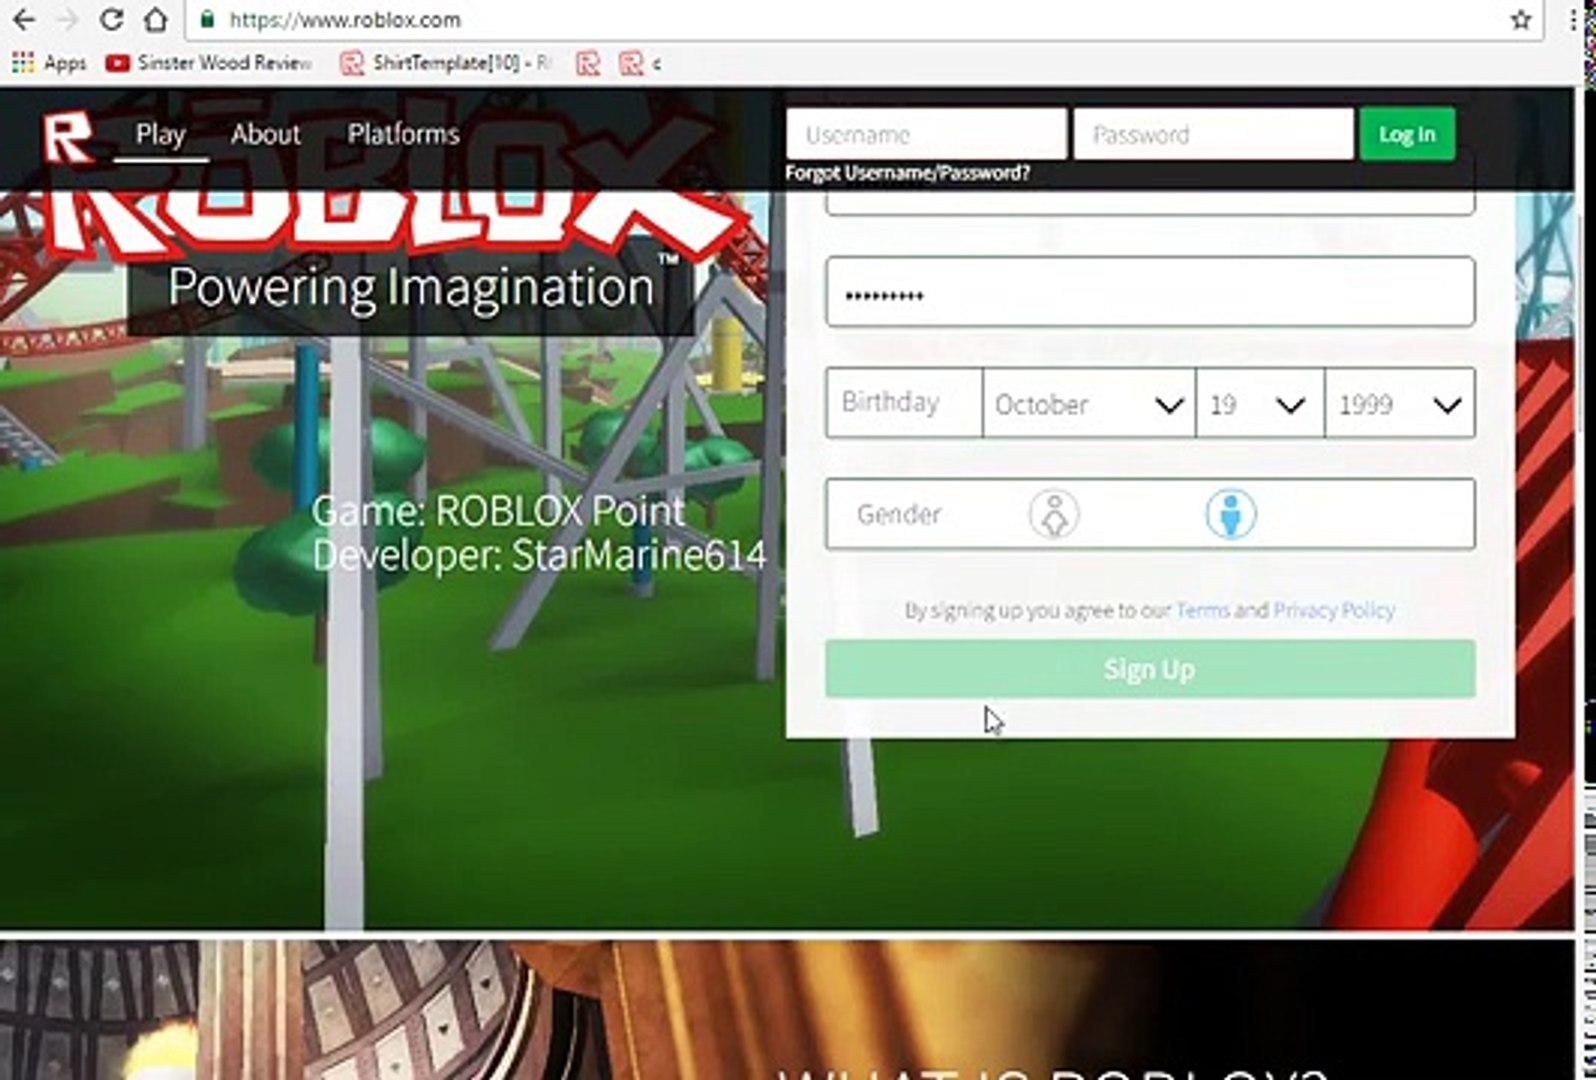 How To Get Free Shirtspants On Roblox Bc Only - How To Get Free Shirts Without Bc On Roblox